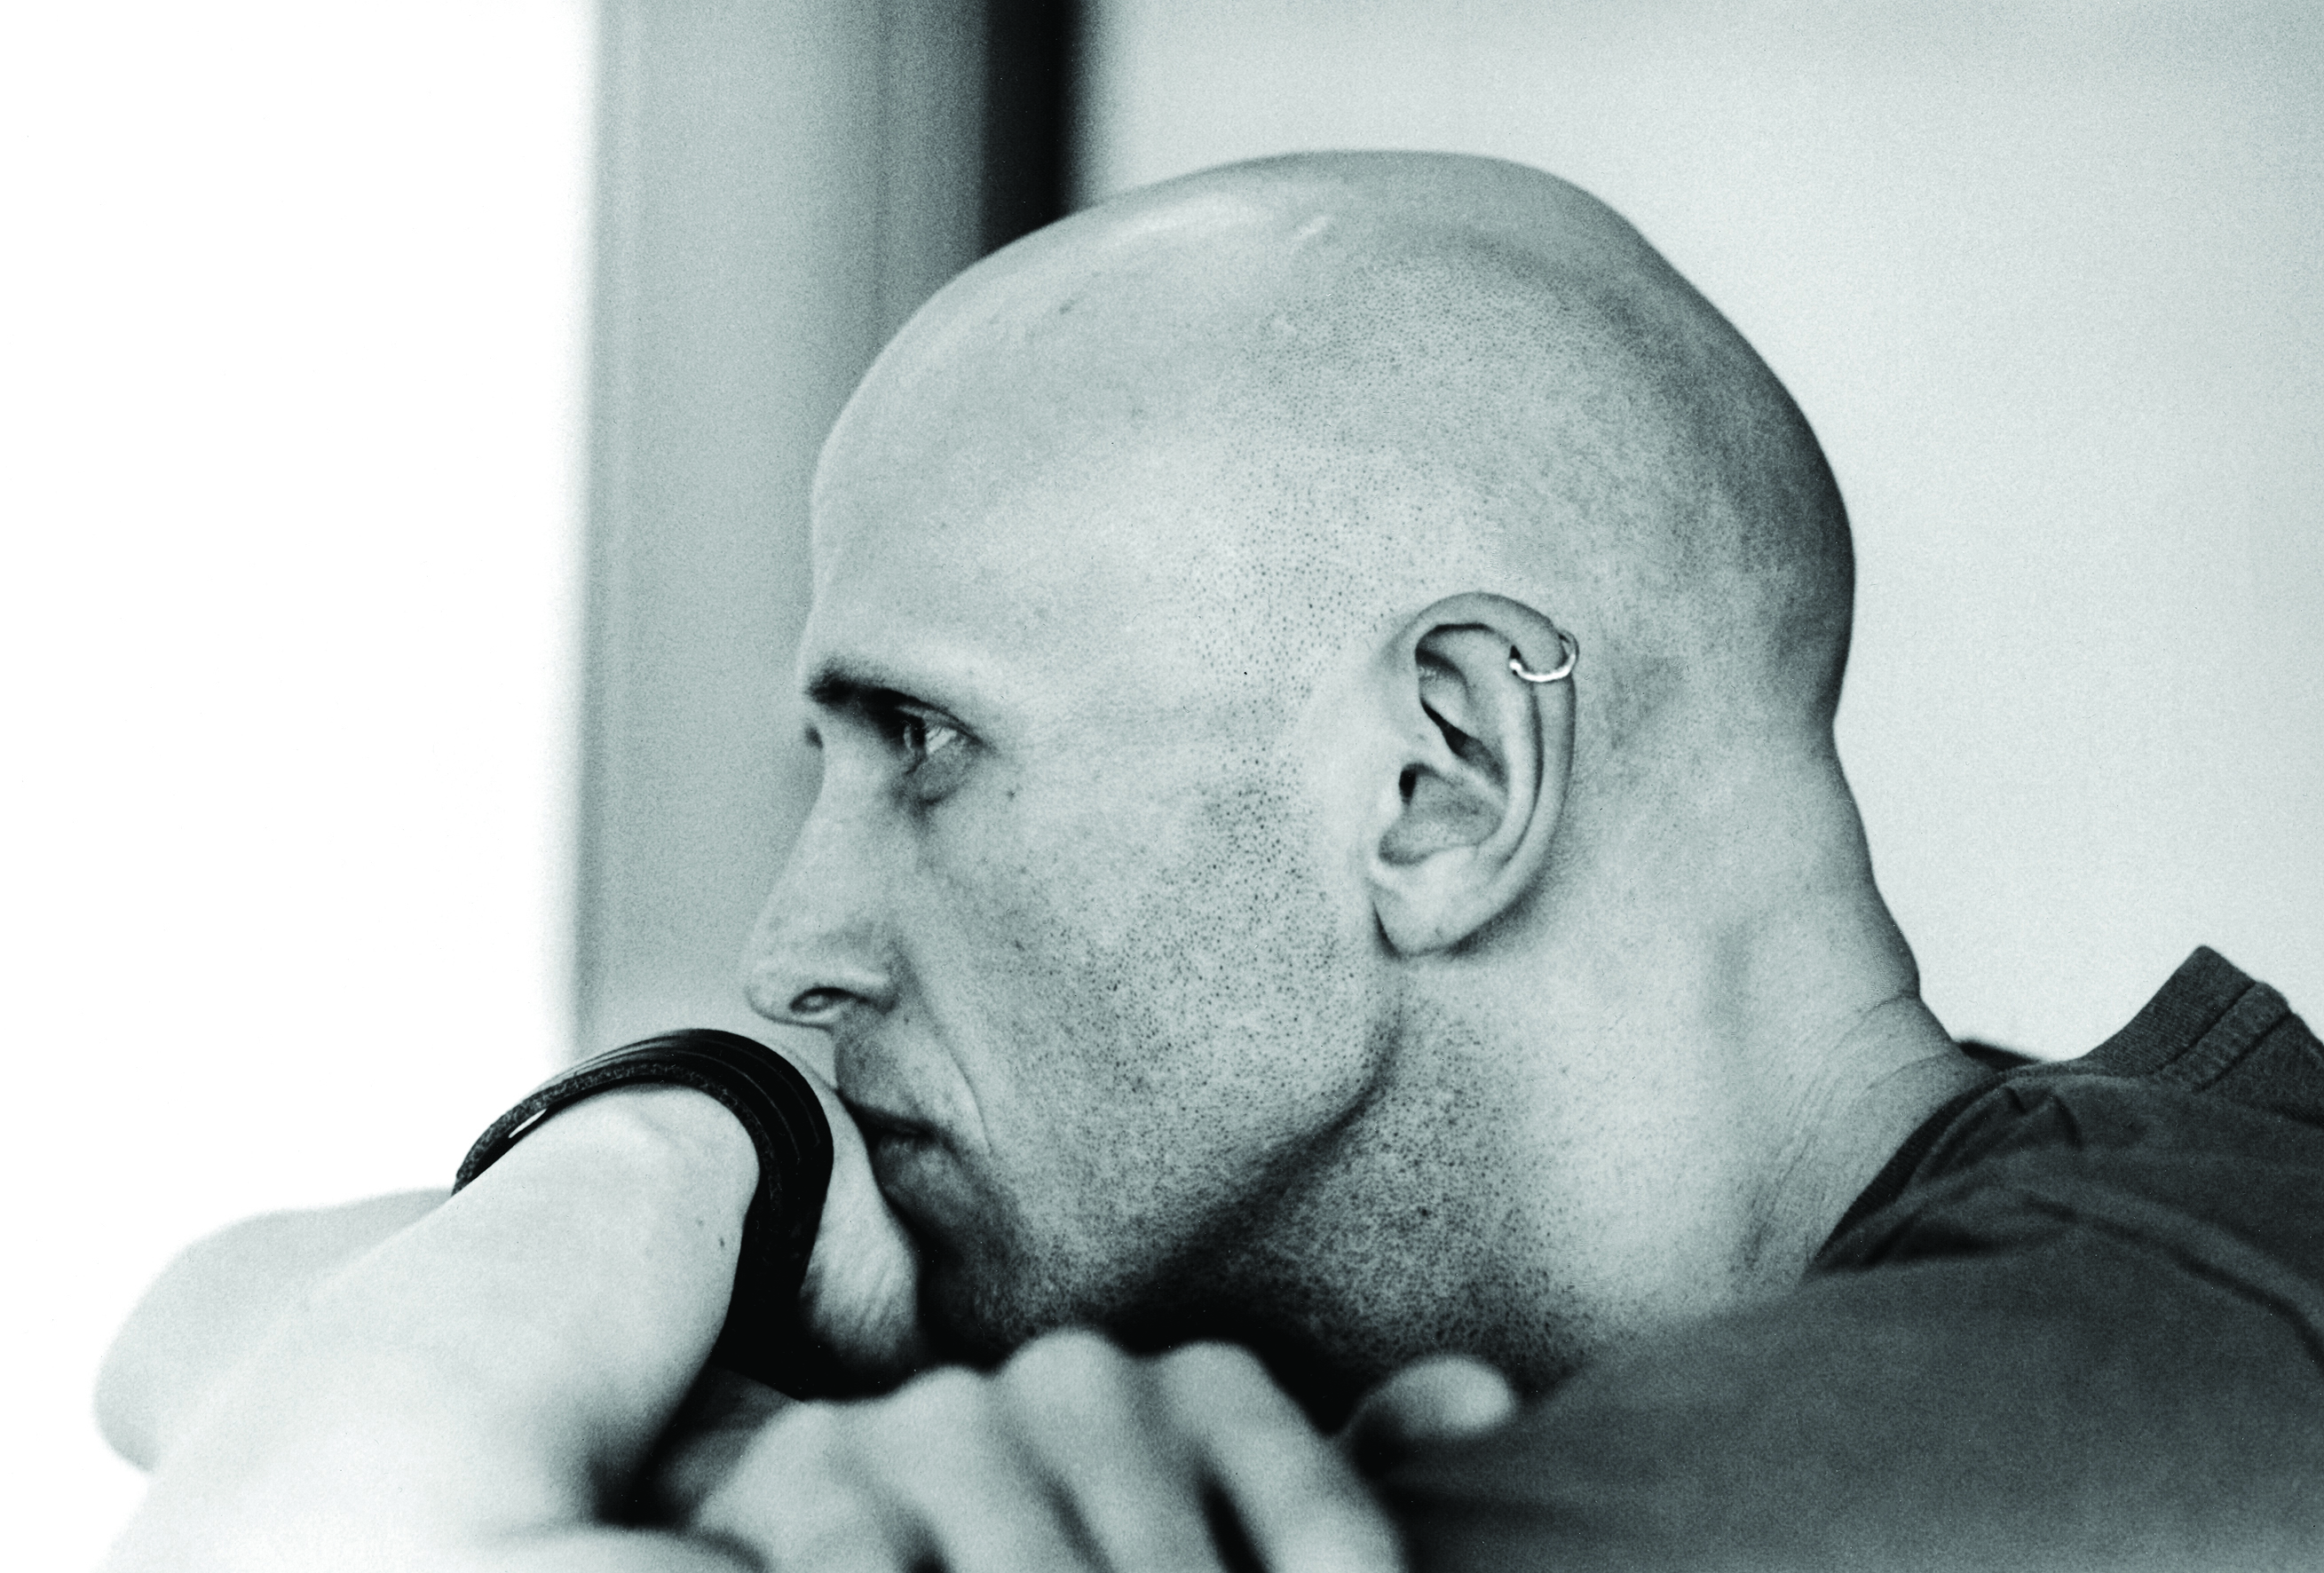 Wayne McGregor. Photo by Nick Mead